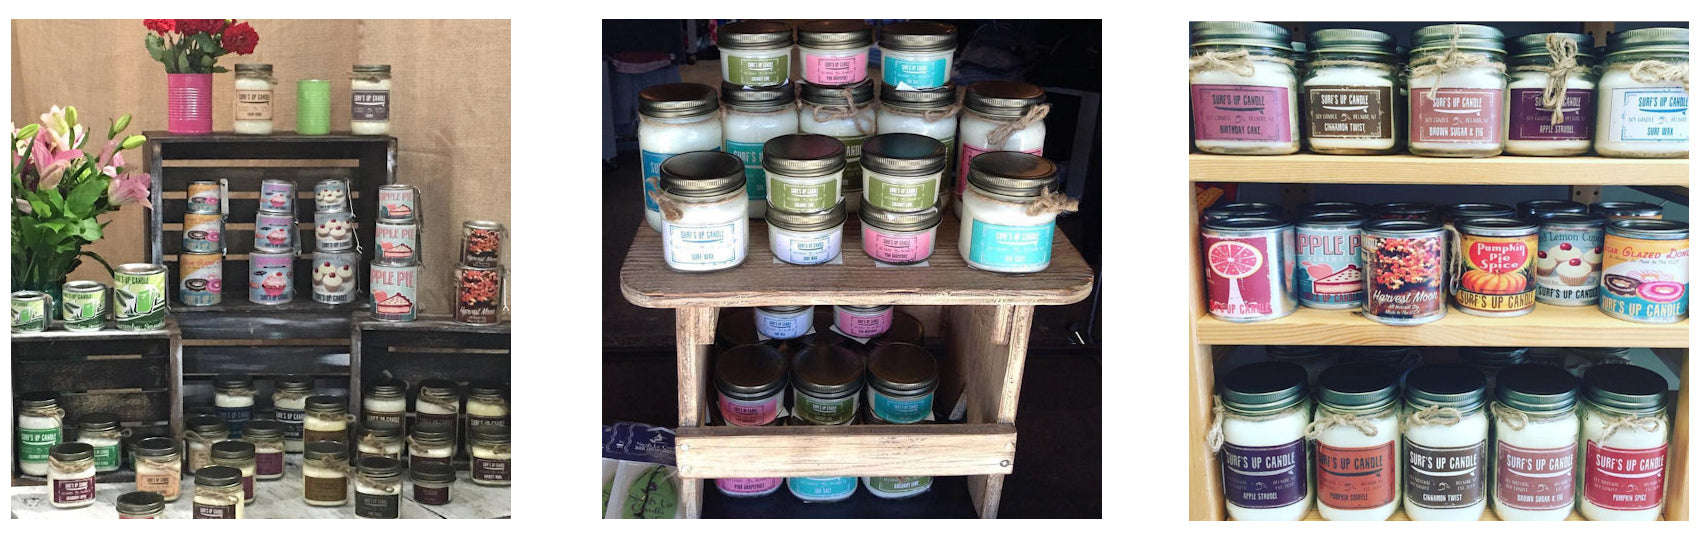 Hand-Poured All-Natural Scented Soy Paint Can Candles & Mason Jar Candles by Surf's Up Candle, Belmar, NJ